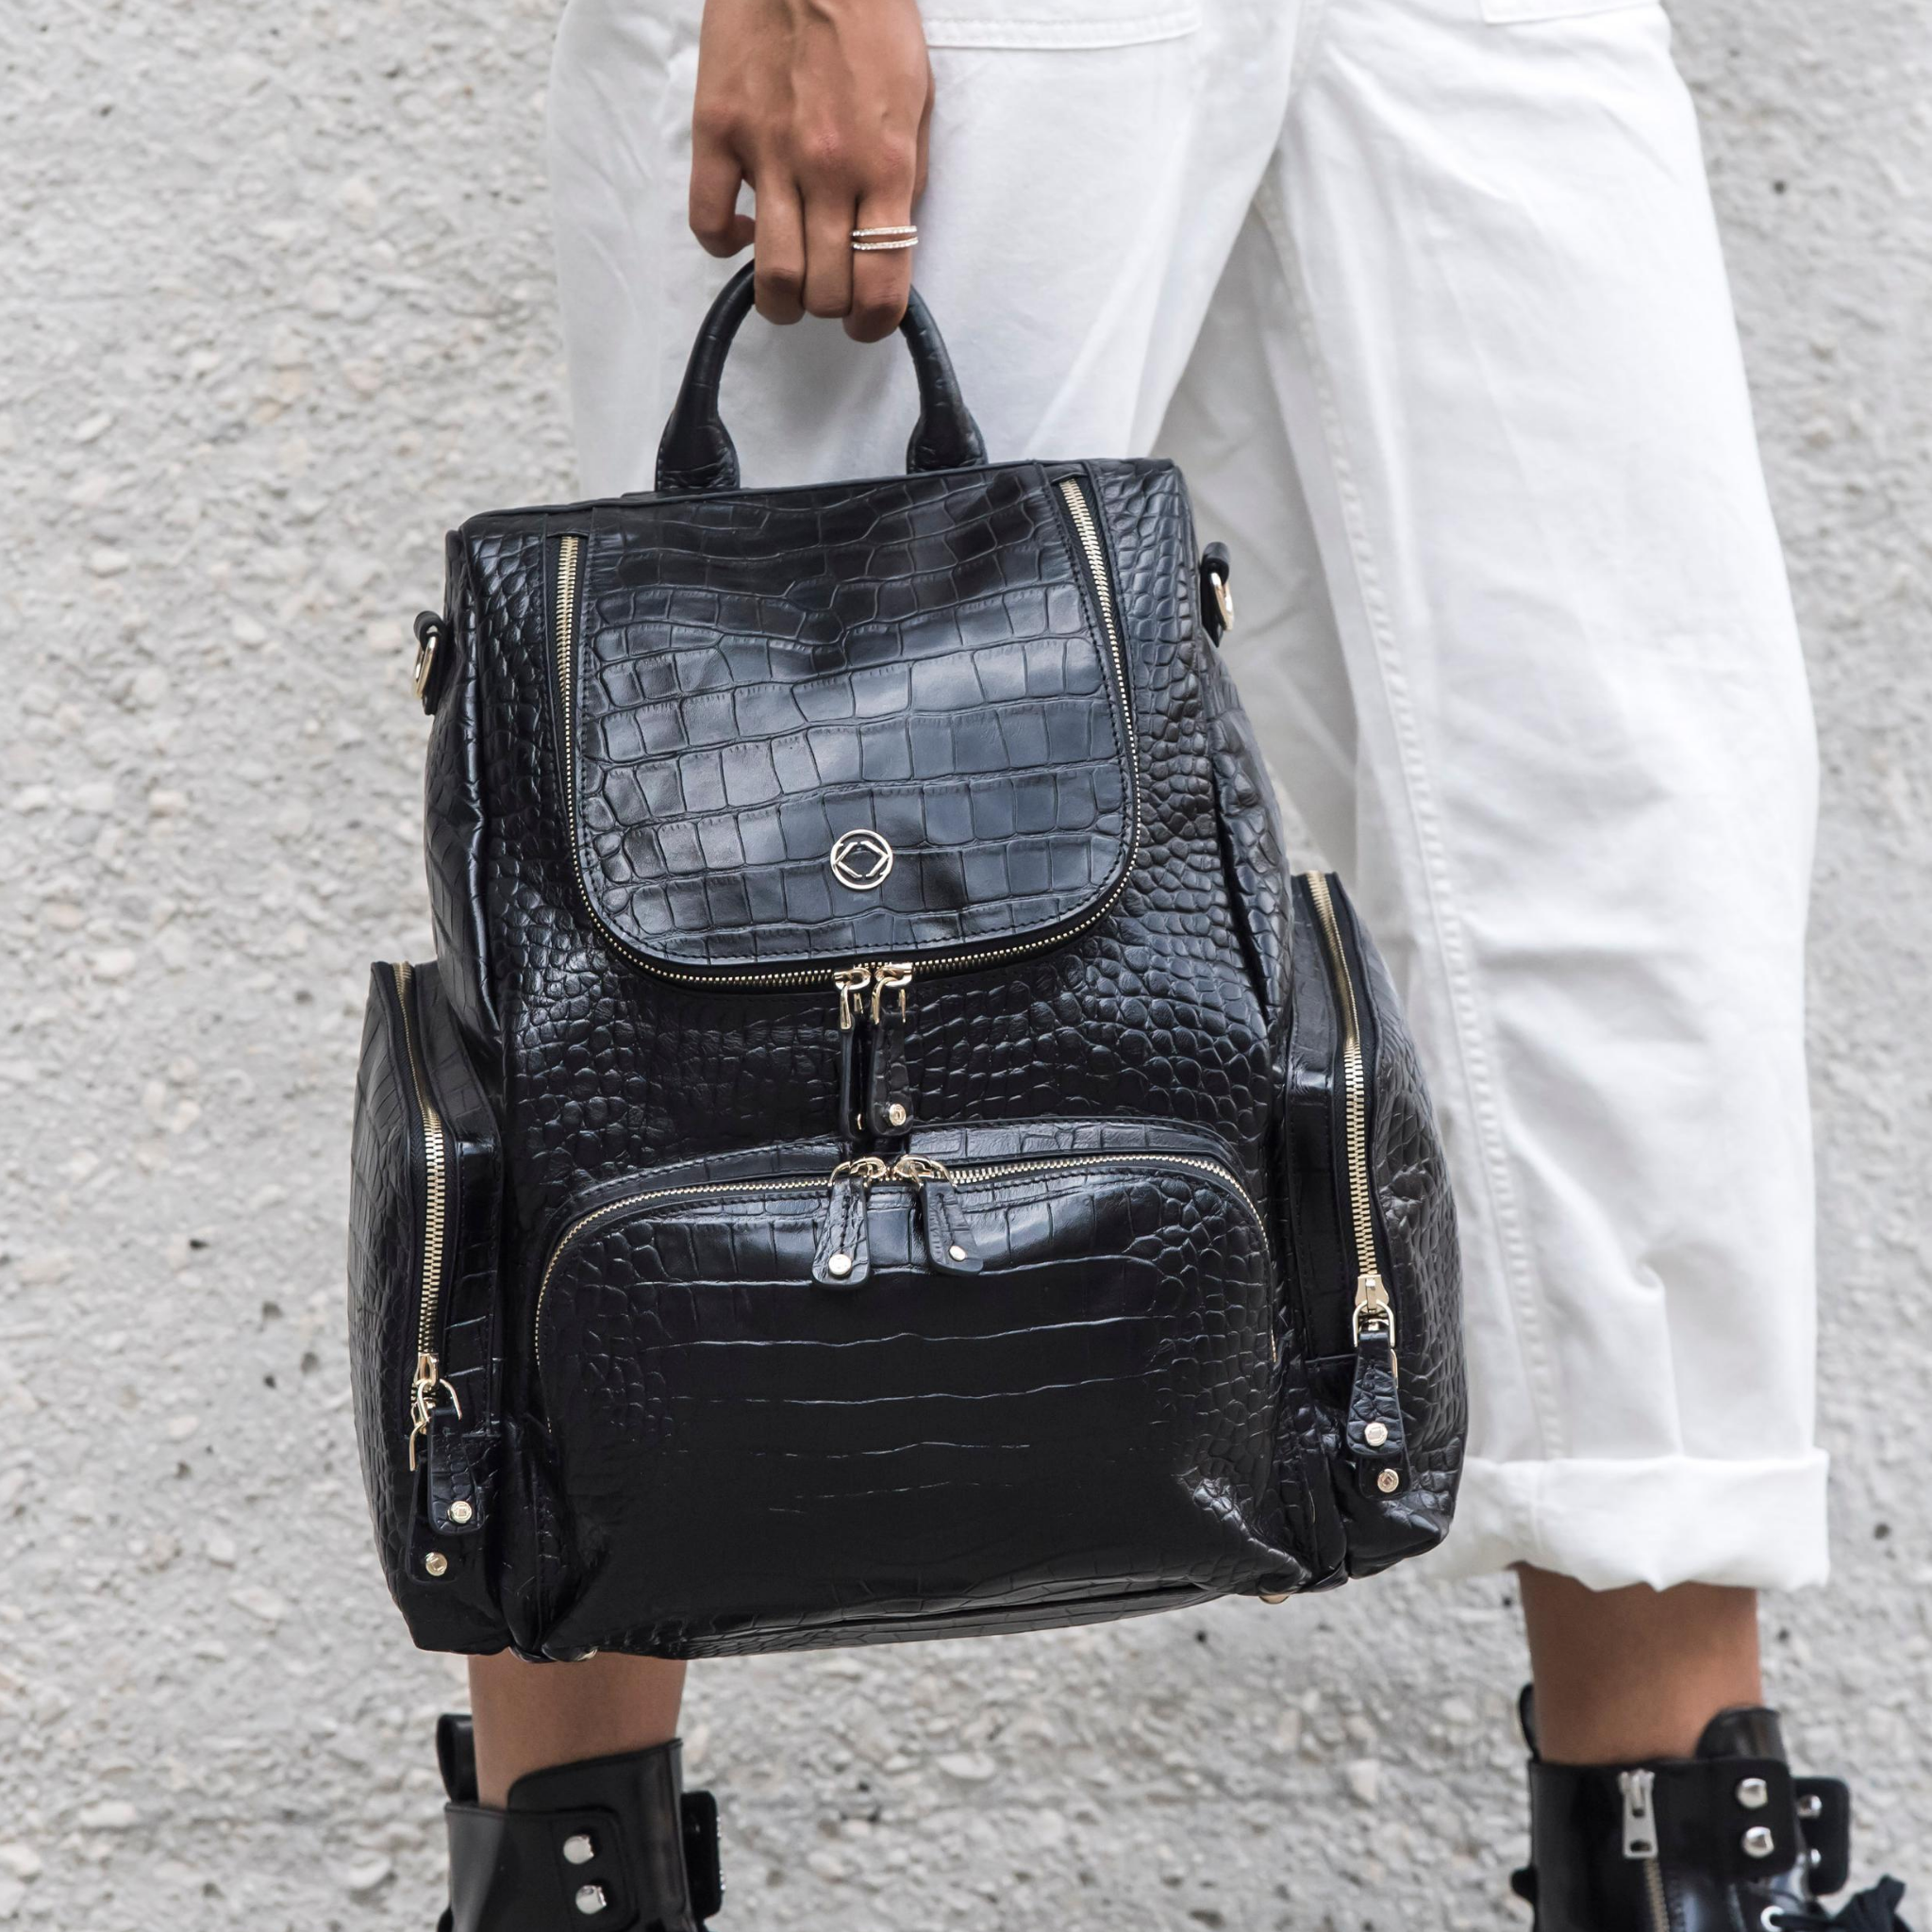 Fashion meets practicality with our black croc backpack. The perfect everyday bag for stylish busy women wanting to stay organised.